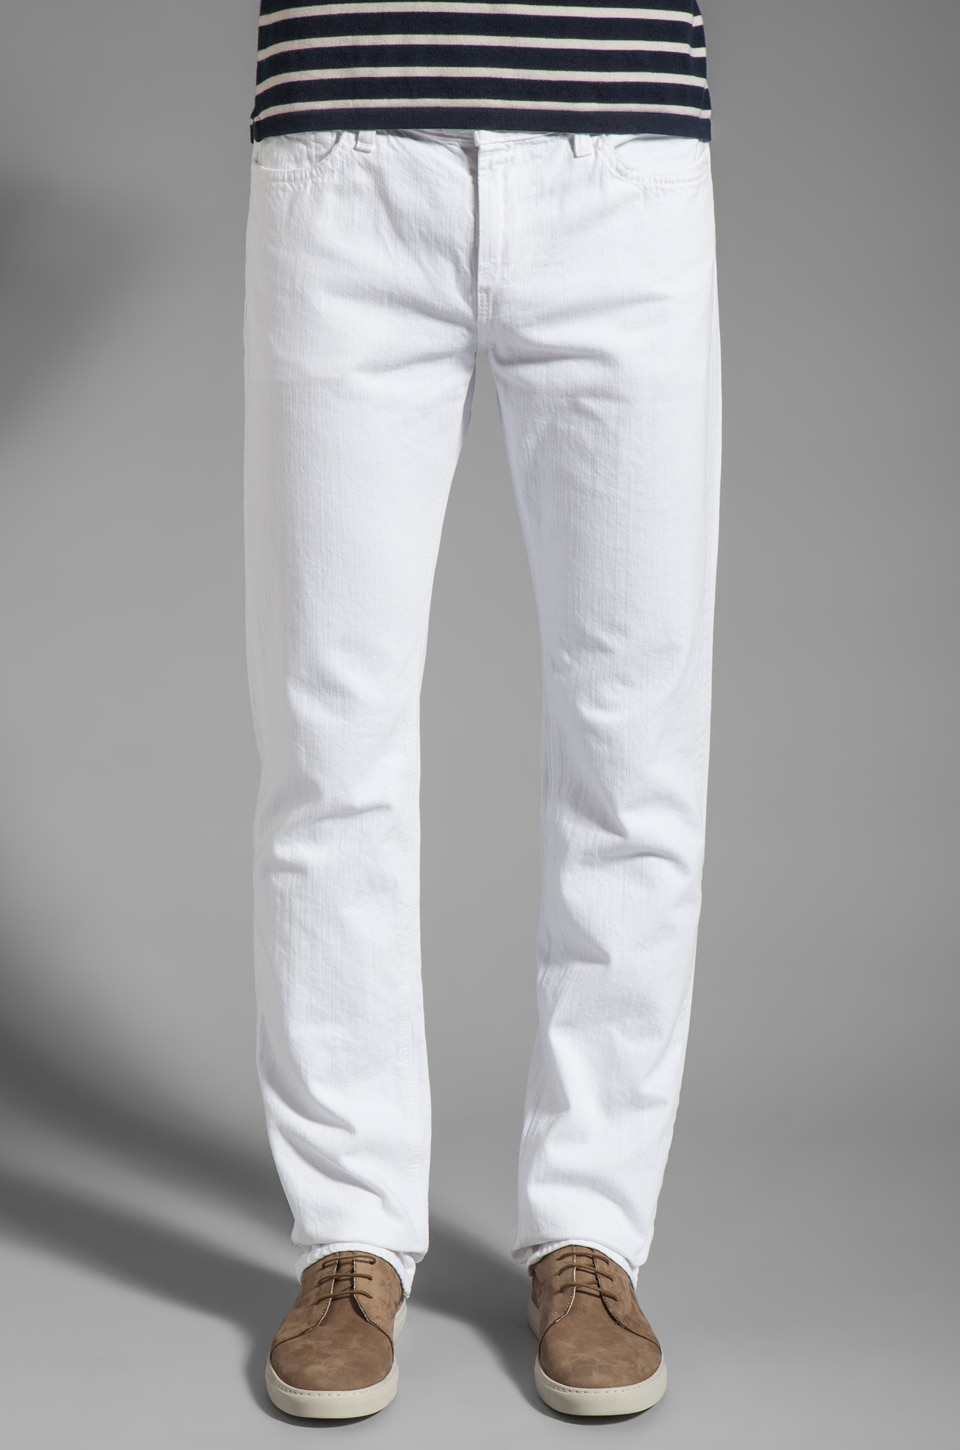 7 For All Mankind Slimmy in Clean White